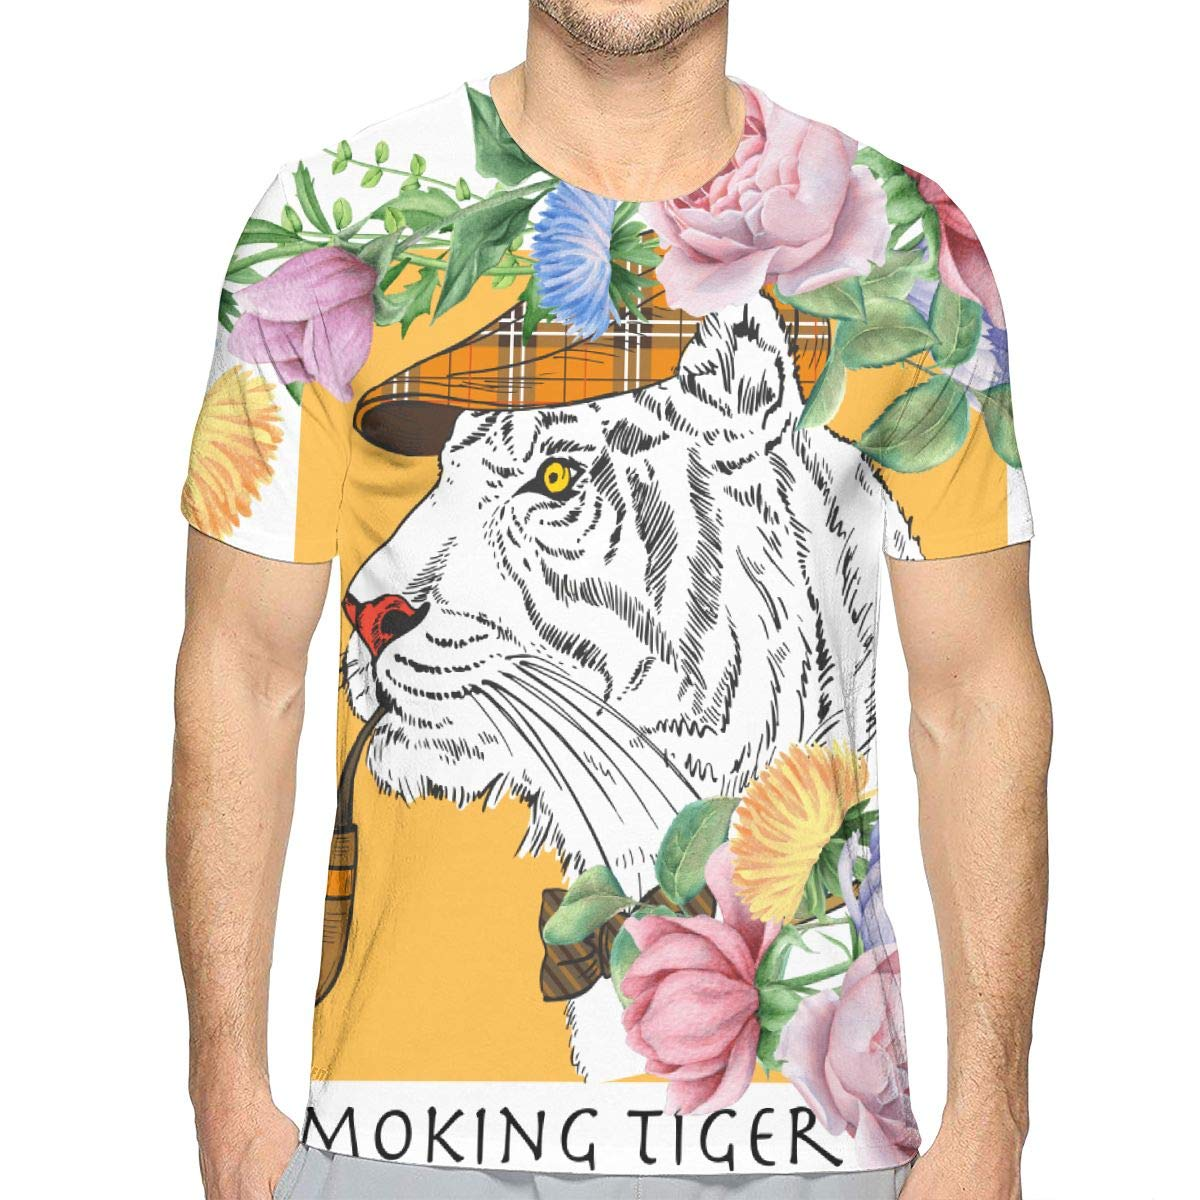 MONCCI White Tiger with Gentleman Neck Tie Fan Ultra Cotton Crewneck Classic Short Sleeve Adult Tee